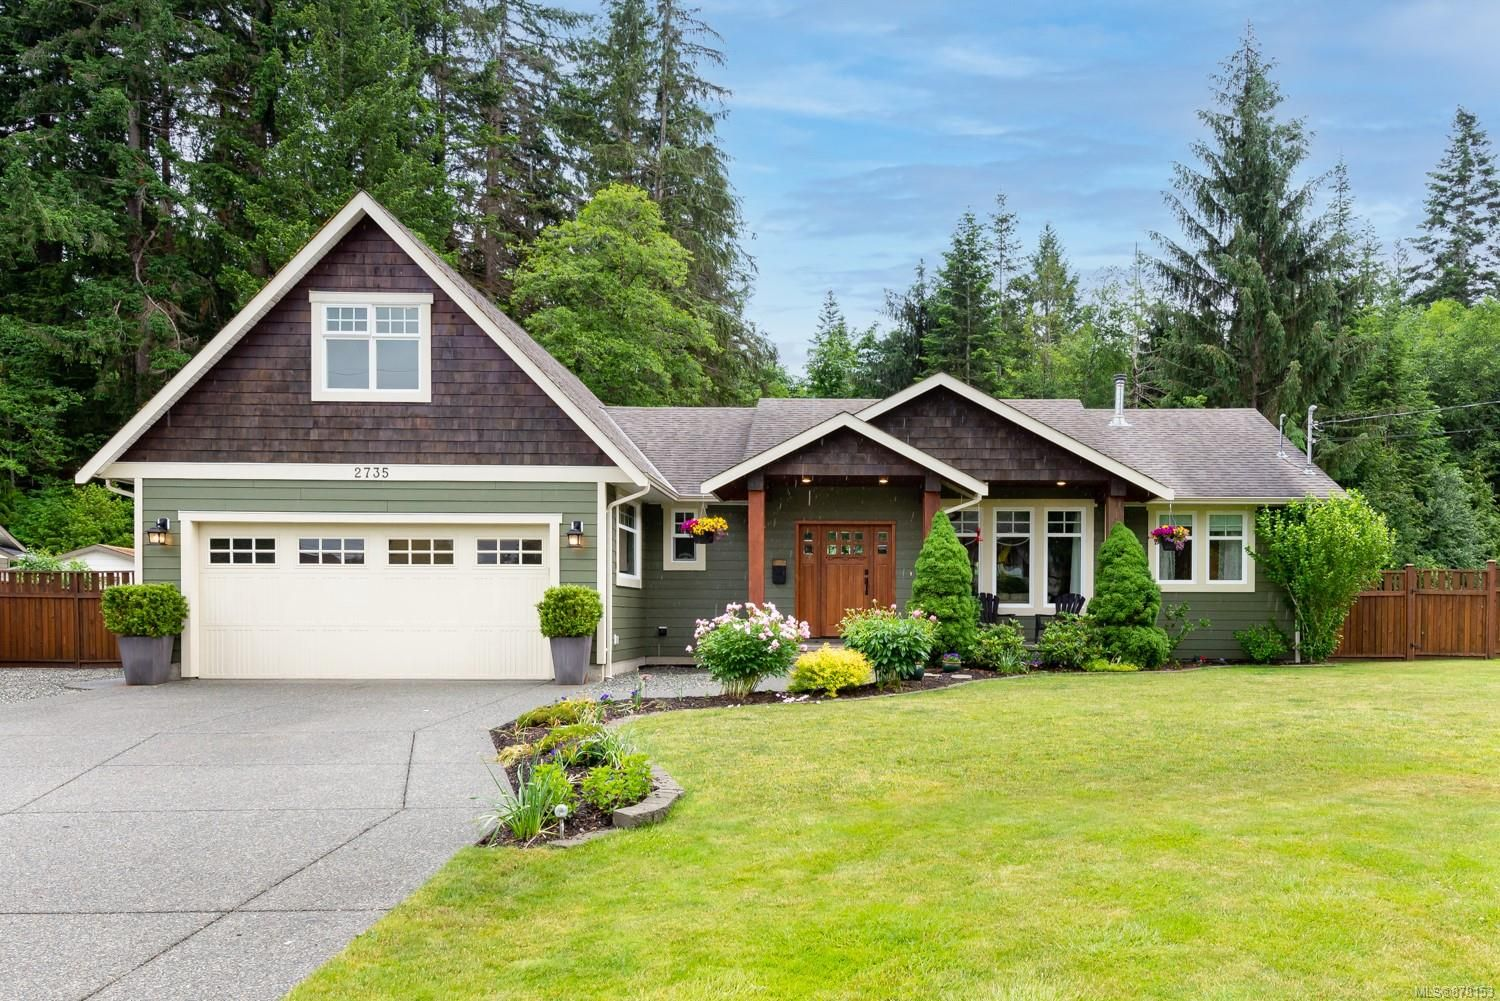 Main Photo: 2735 Tatton Rd in Courtenay: CV Courtenay North House for sale (Comox Valley)  : MLS®# 878153